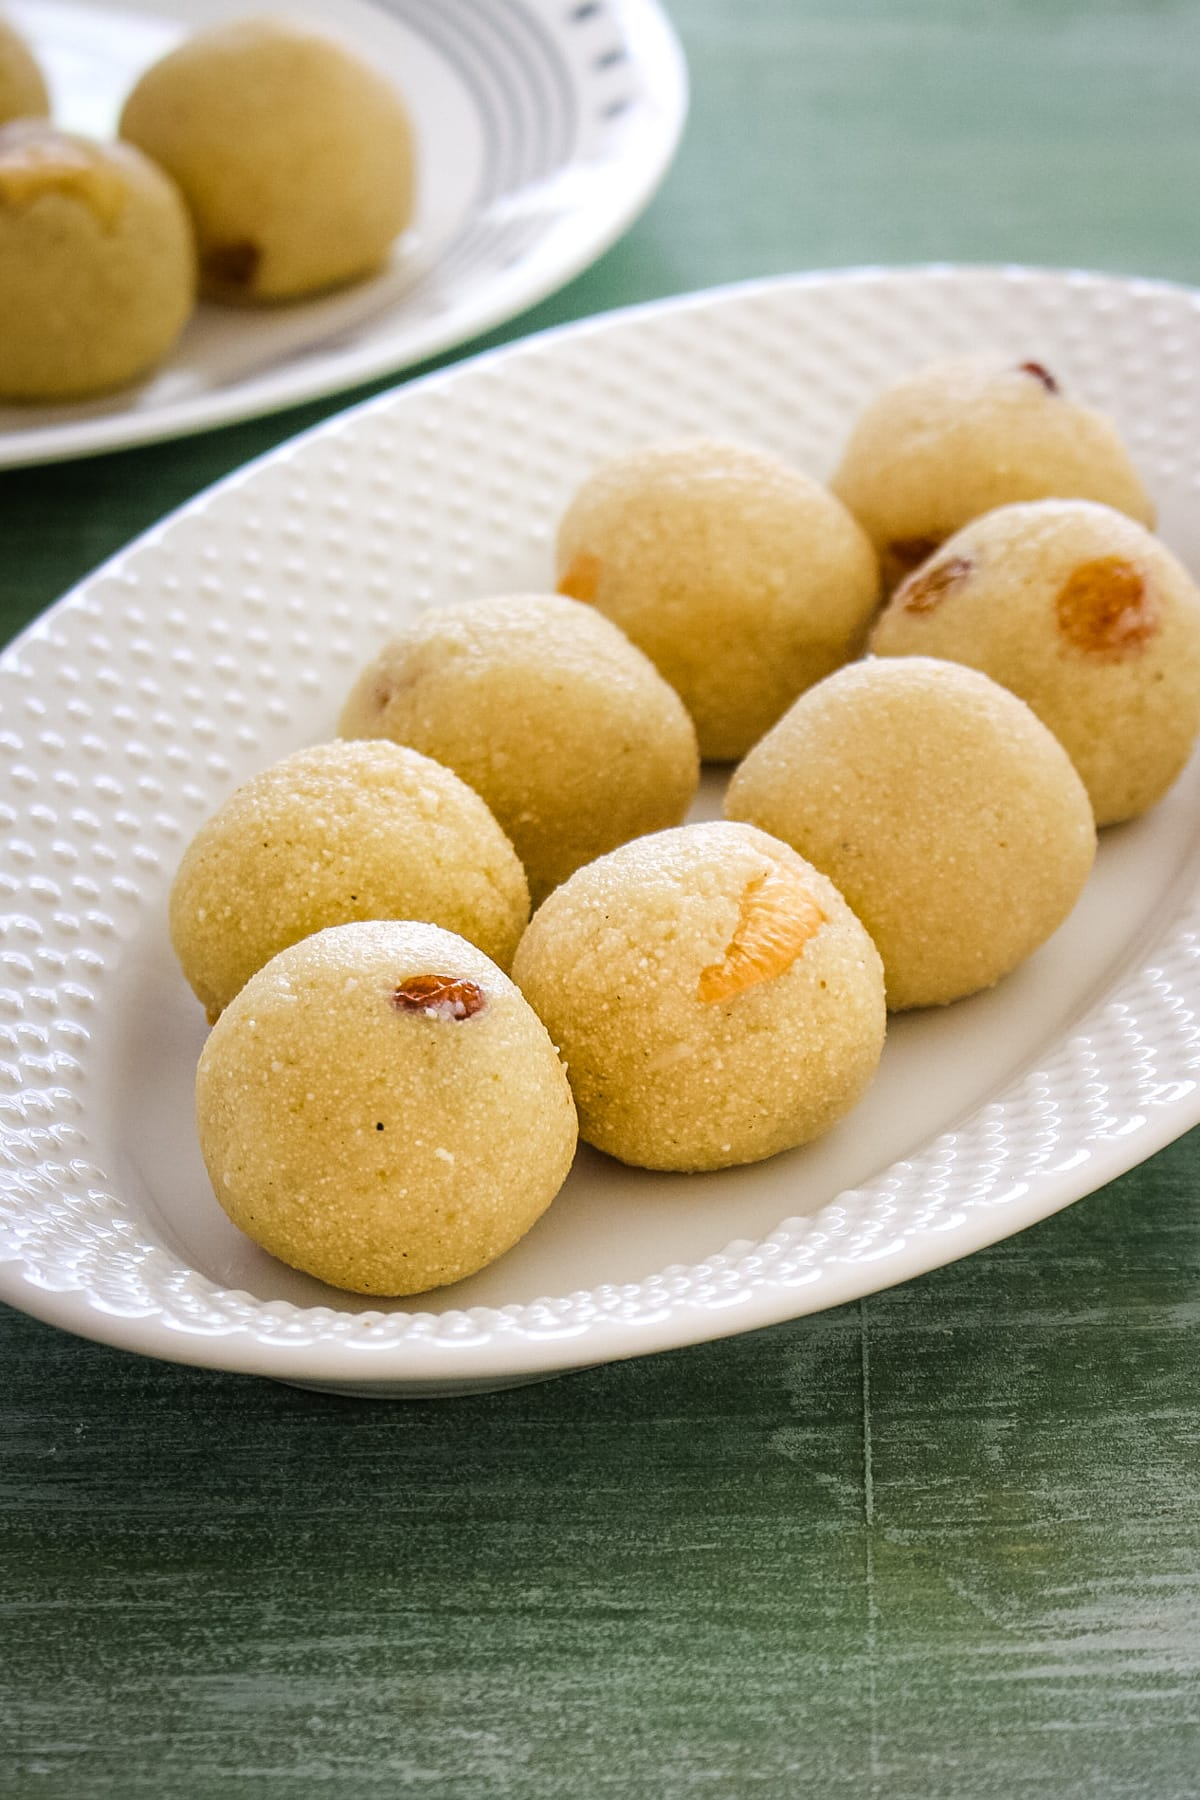 7 rava laddu in an oval plate with few more ladoos in the back in another plate